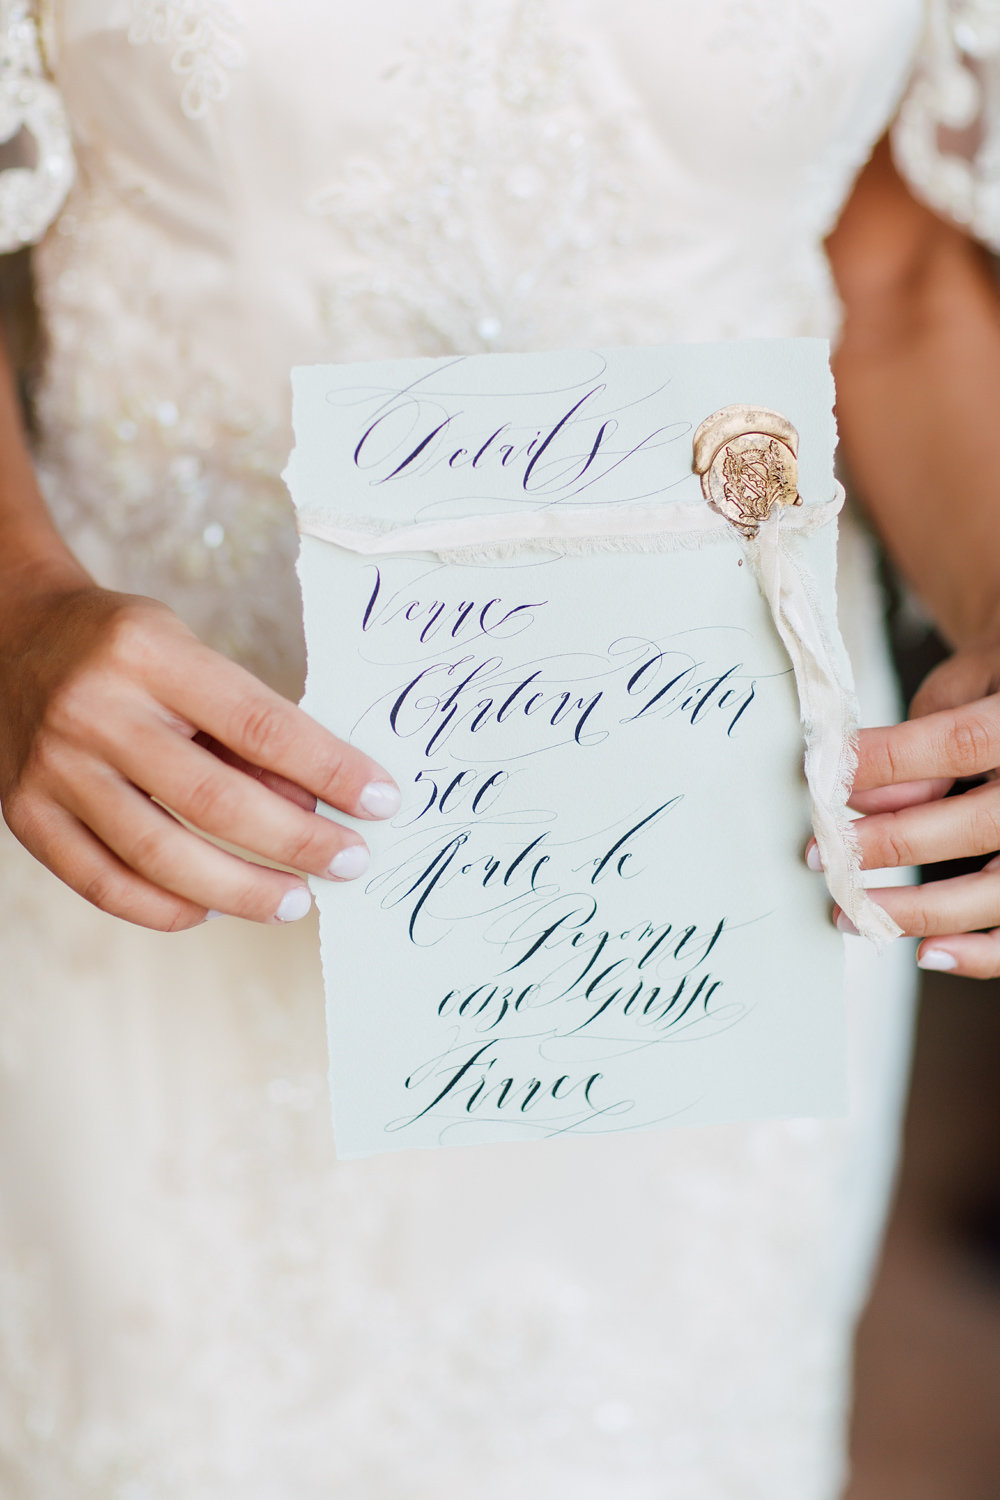 Fine art wedding calligraphy for an information card